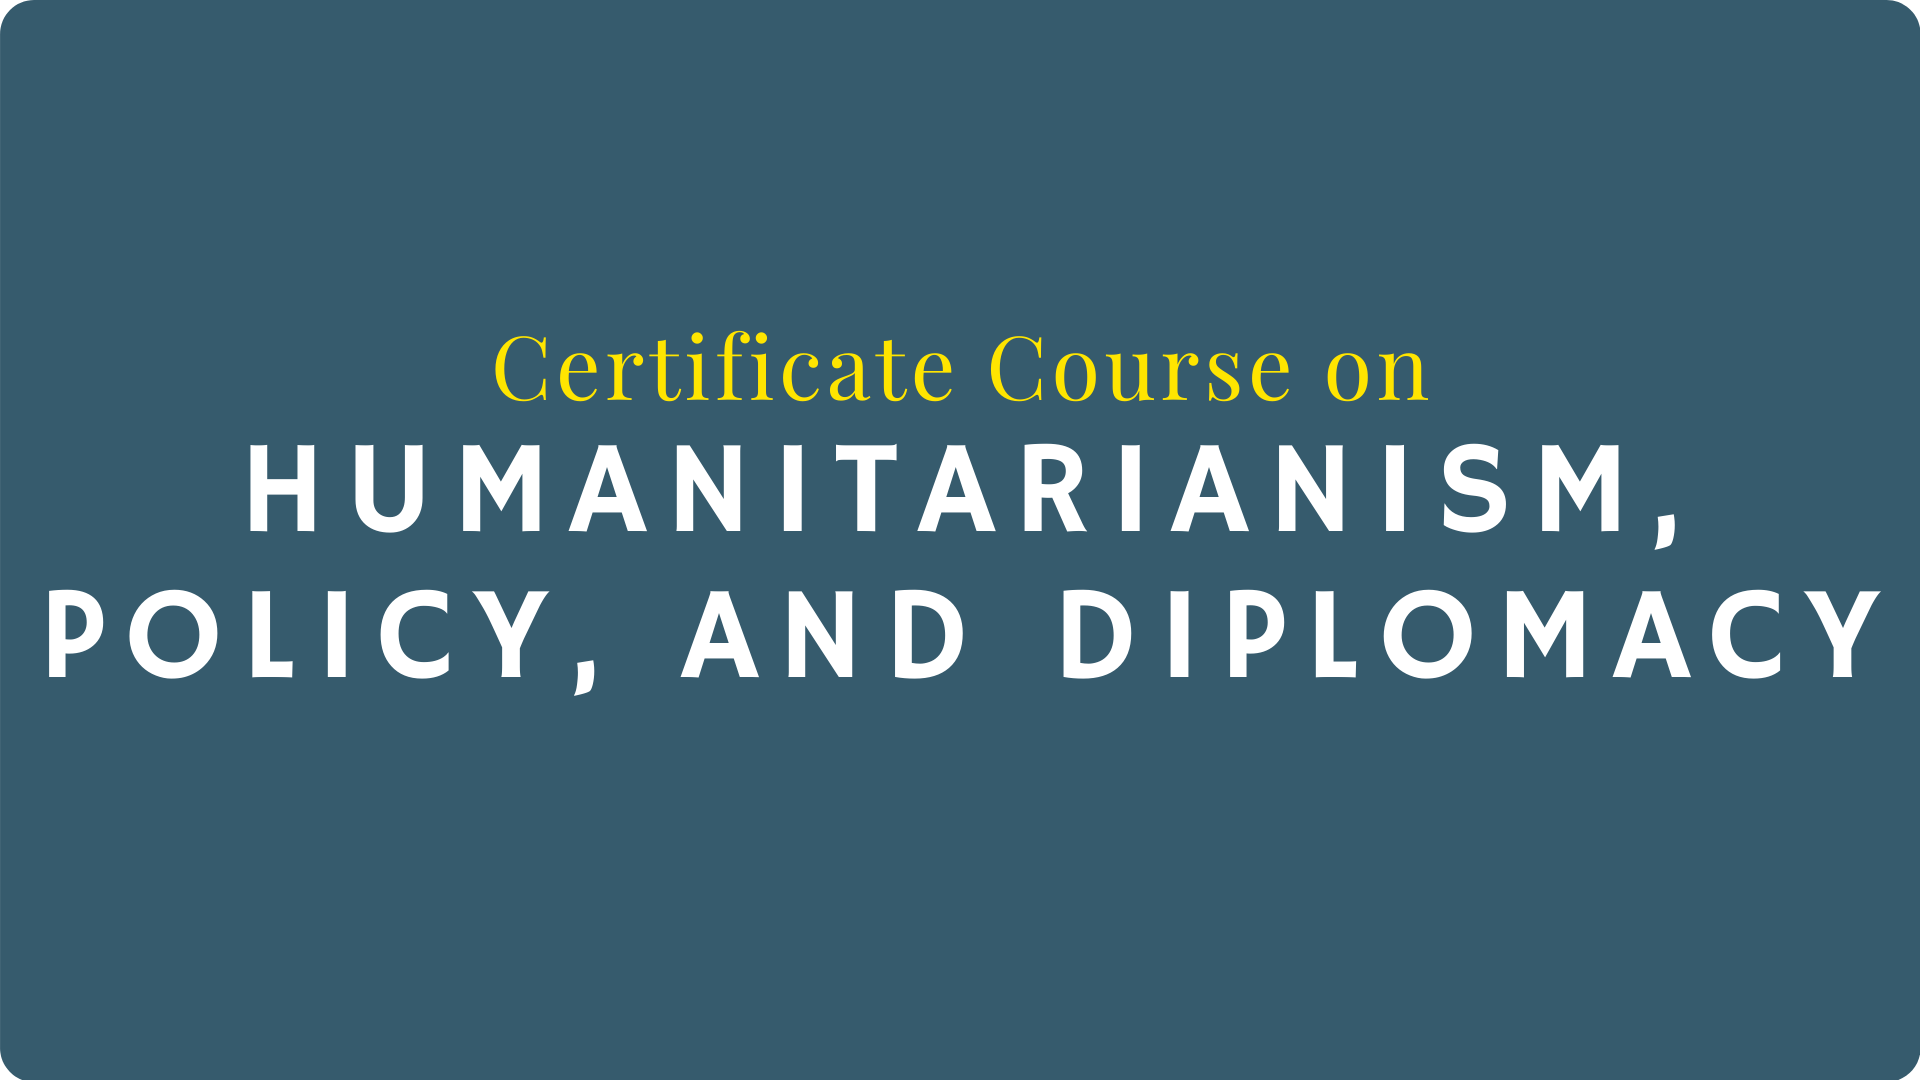 Certificate Course on Humanitarianism, Policy, and Diplomacy